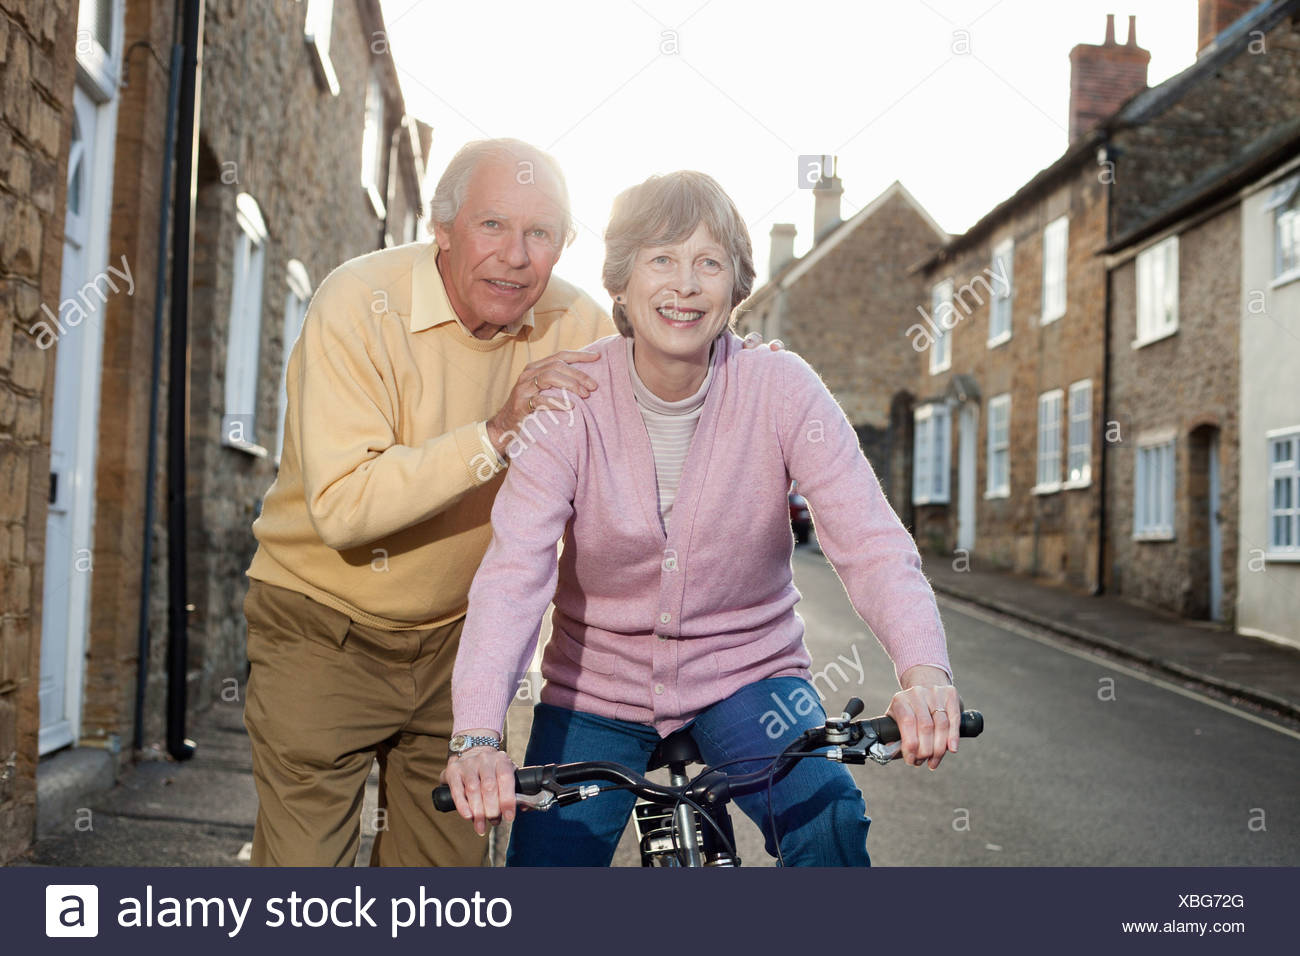 Husband supporting wife on bicycle - Stock Image